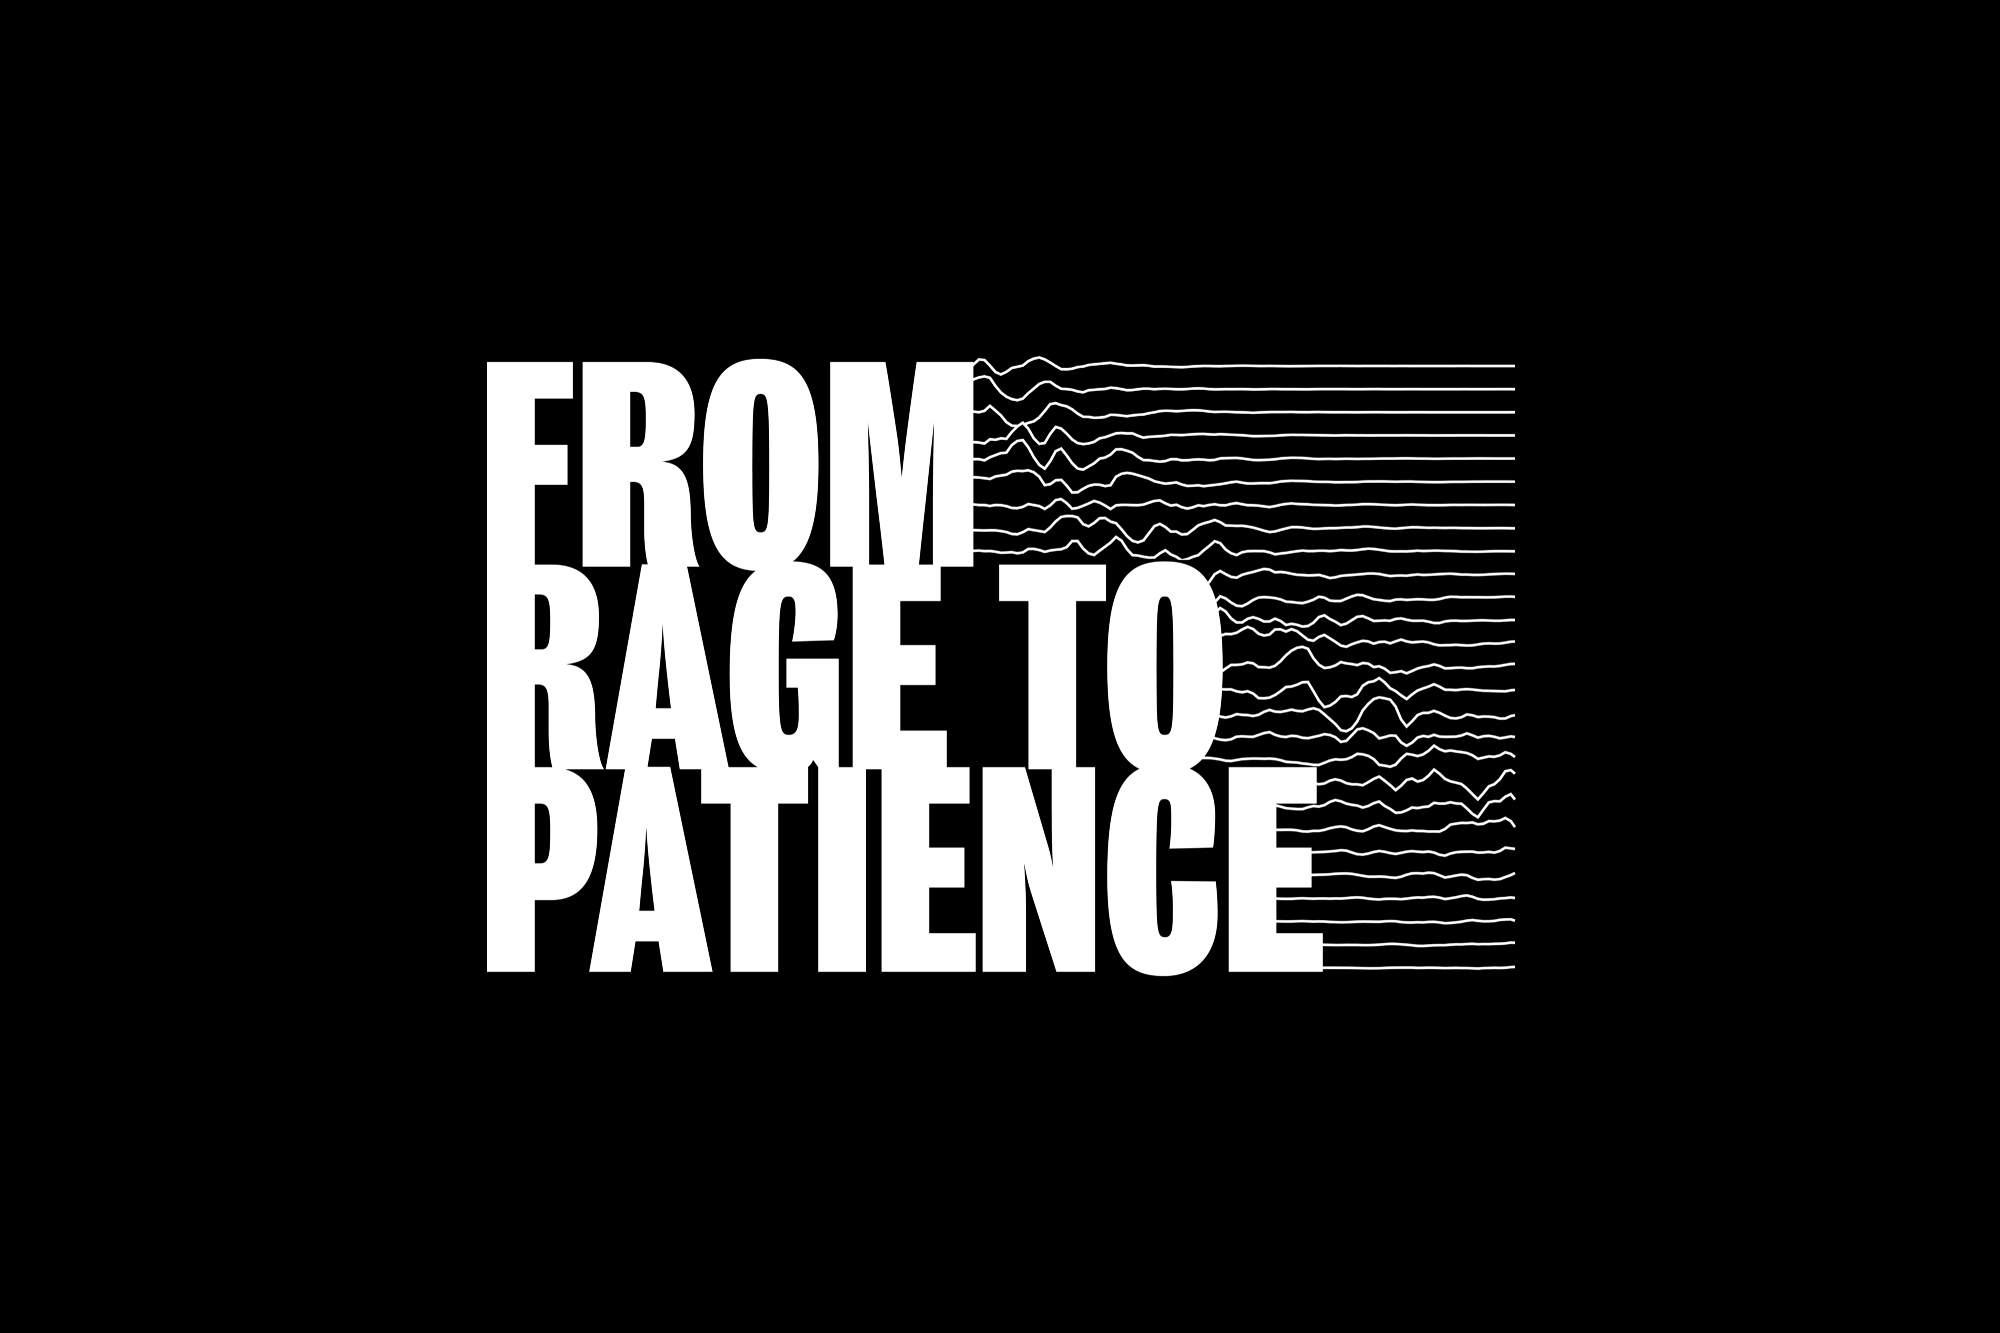 From Rage to Patience.